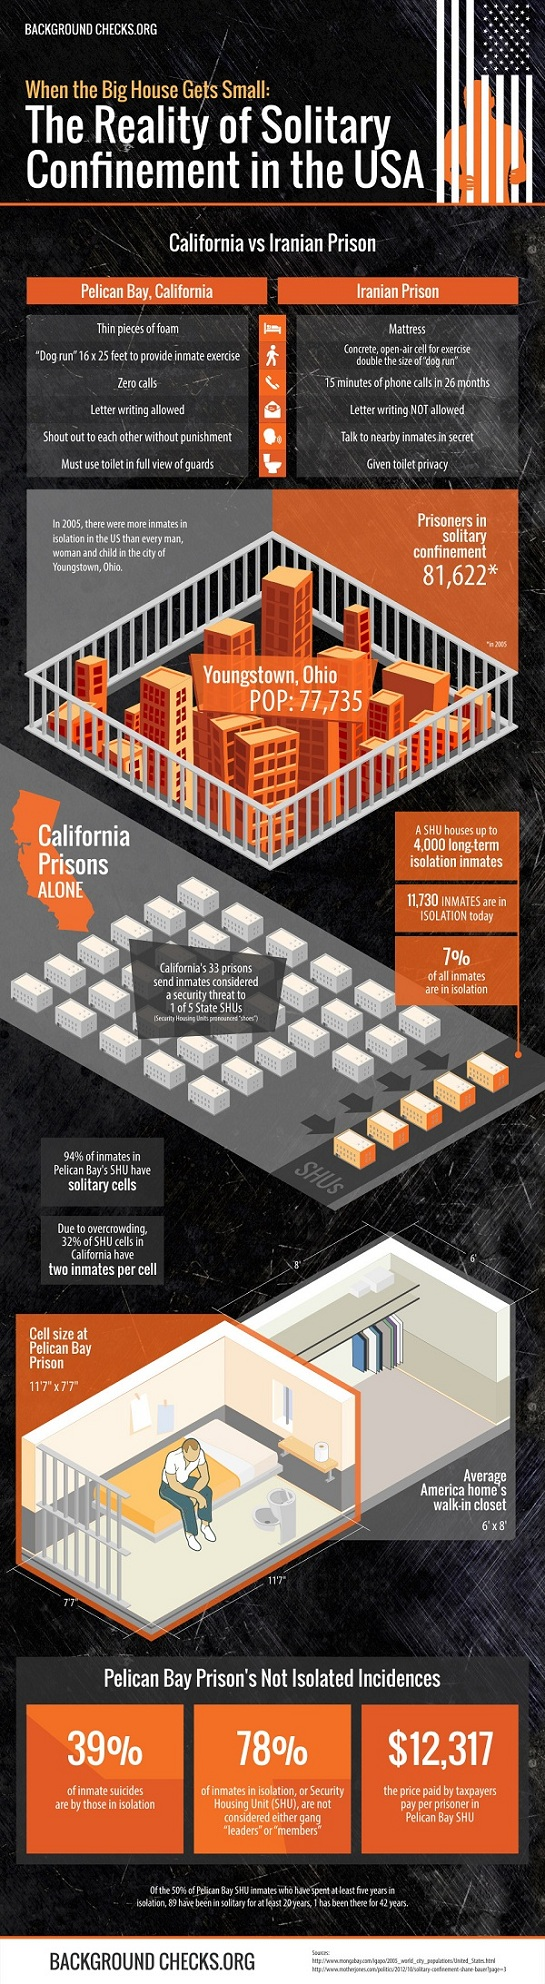 The Reality of Solitary Confinement in the United States: California vs. Iranian Prison